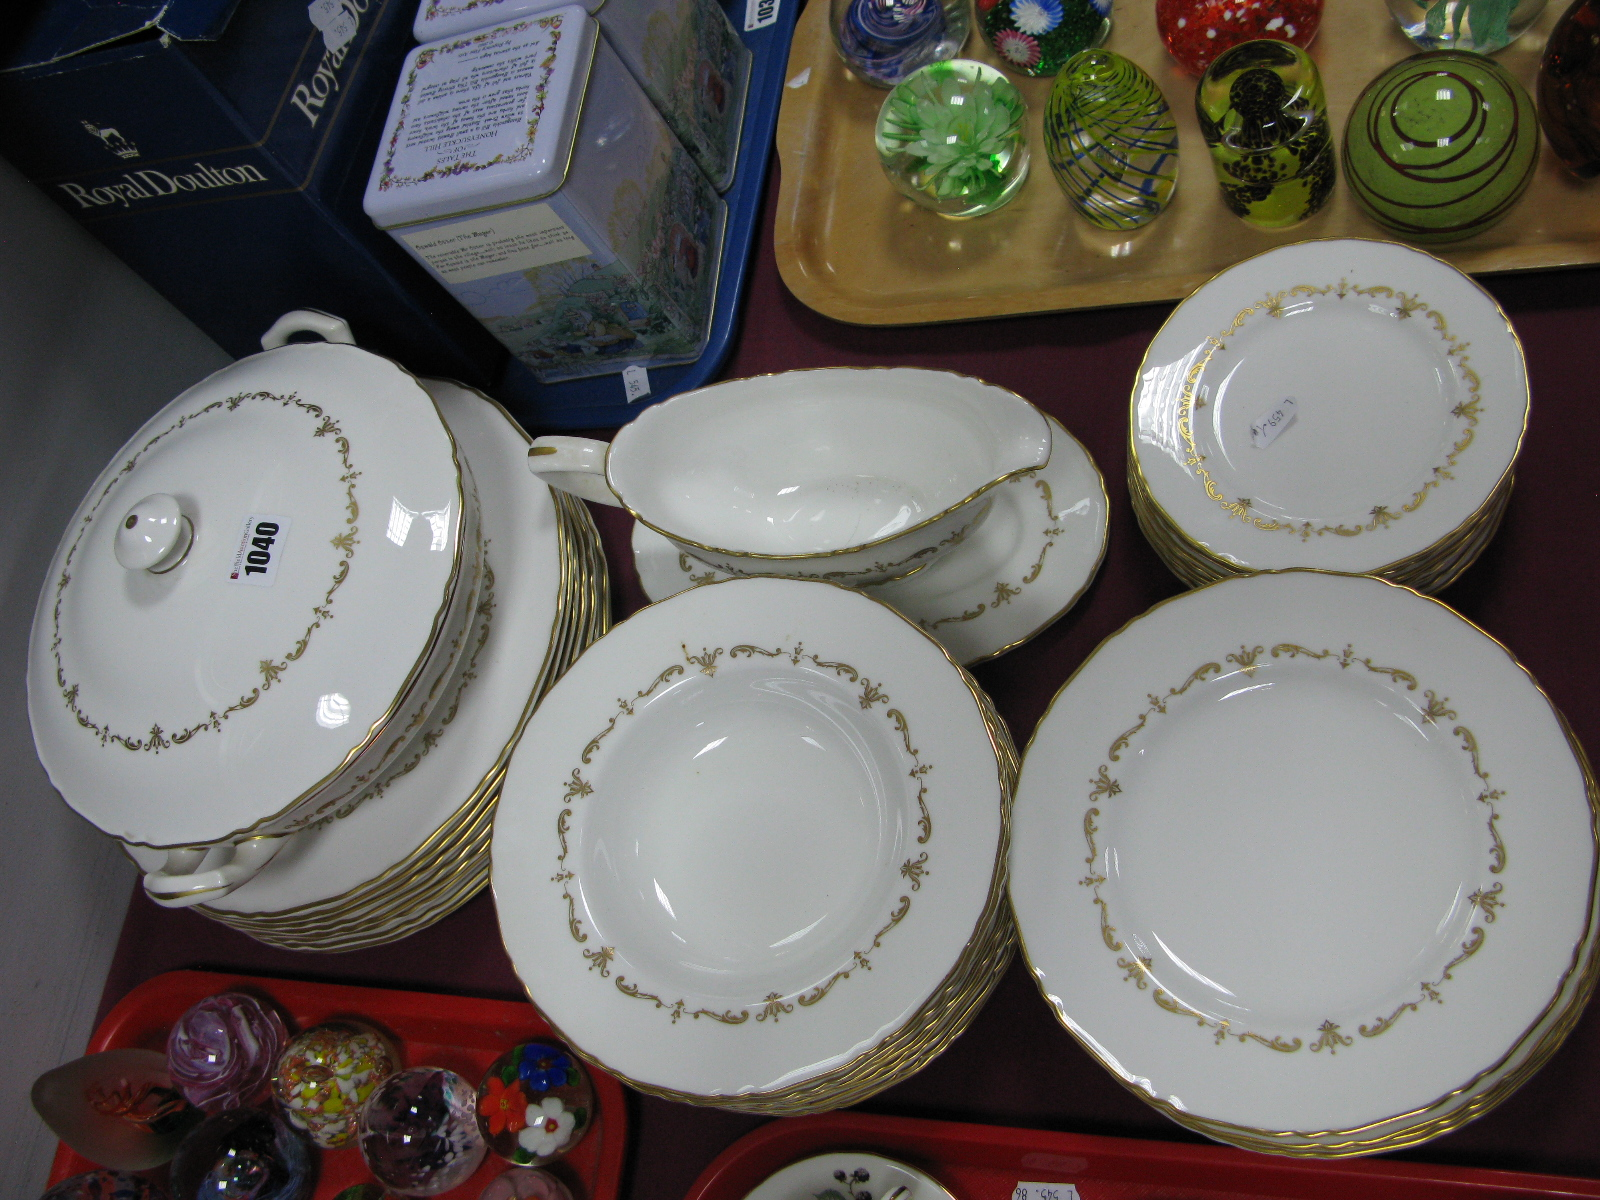 Lot 1040 - A Modern Royal Worcester Porcelain Dinner Service in the 'Gold Chantilly' Pattern, each piece with